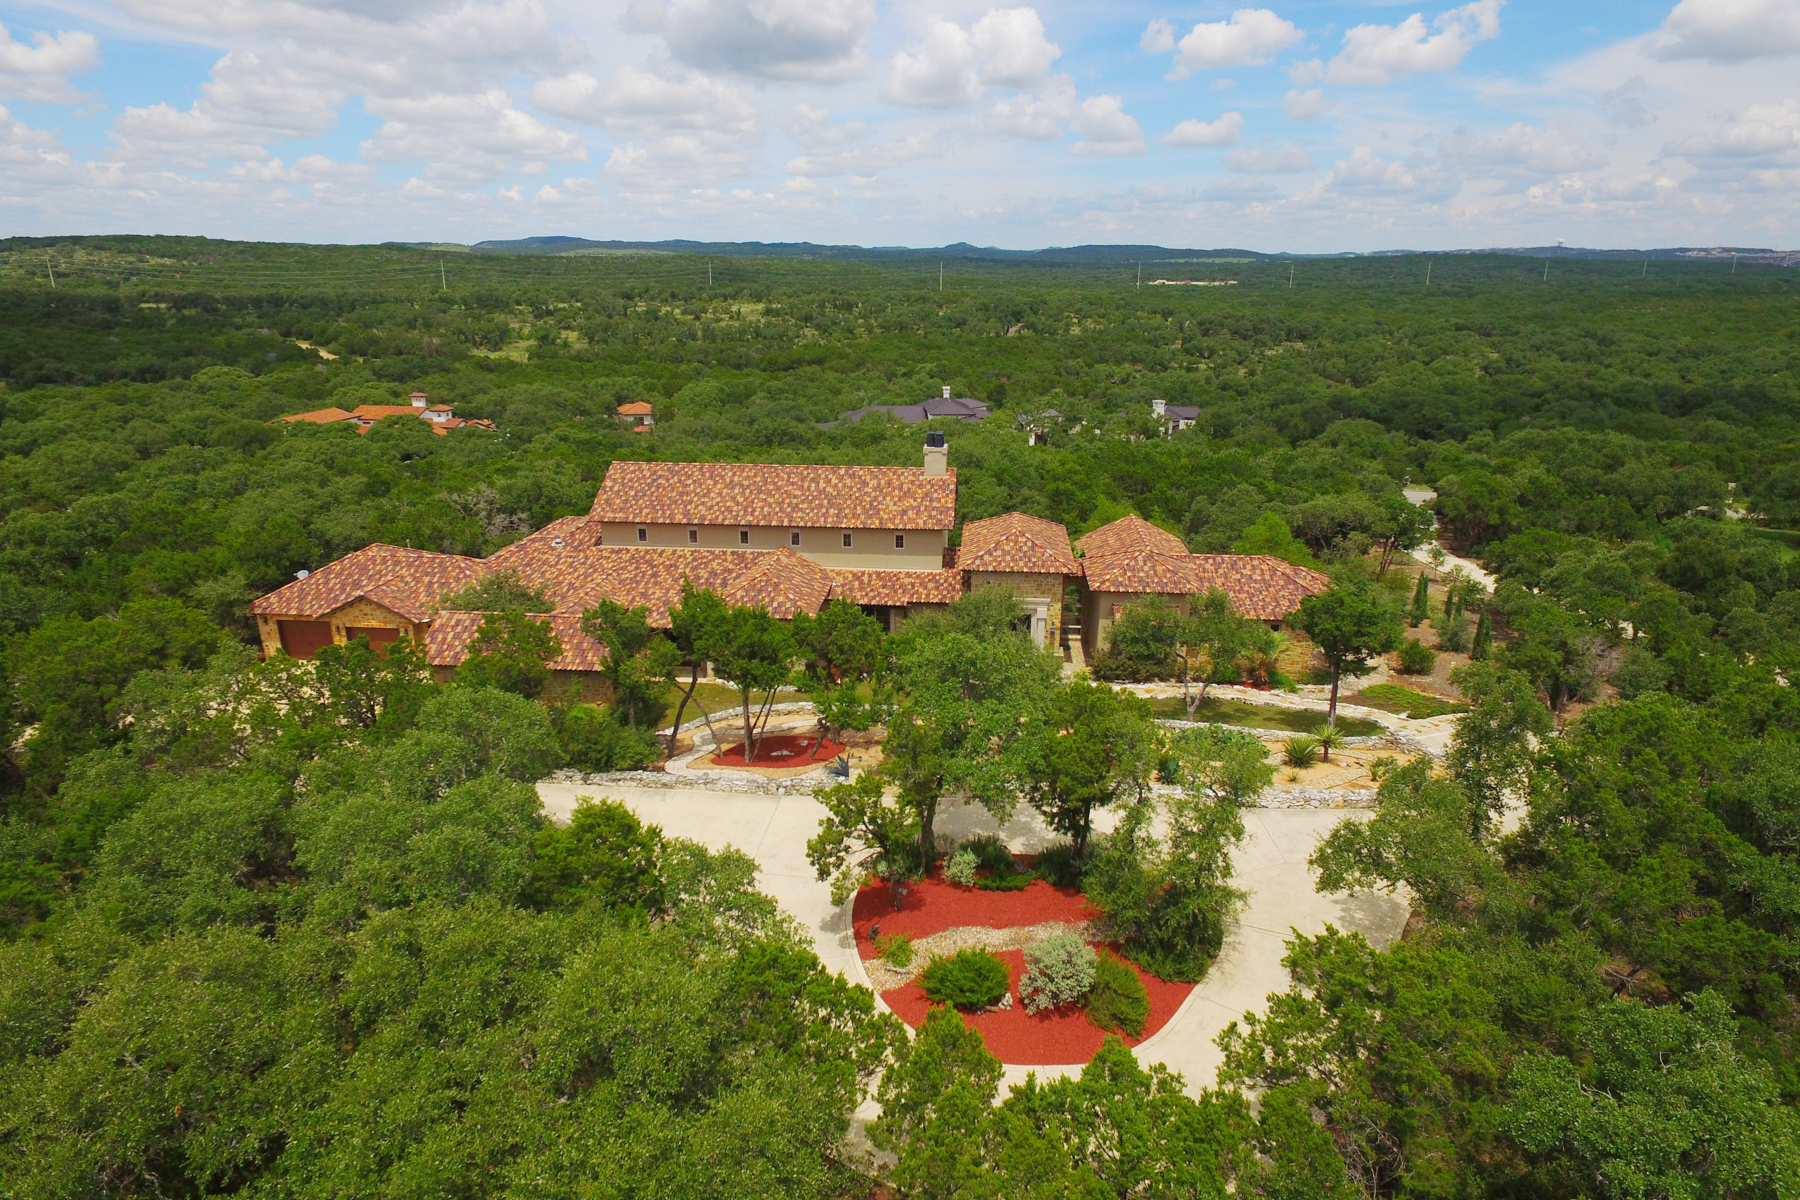 Casa Unifamiliar por un Venta en Breathtaking Estate in Greystone Estates 19418 Settlers Crk San Antonio, Texas, 78258 Estados Unidos